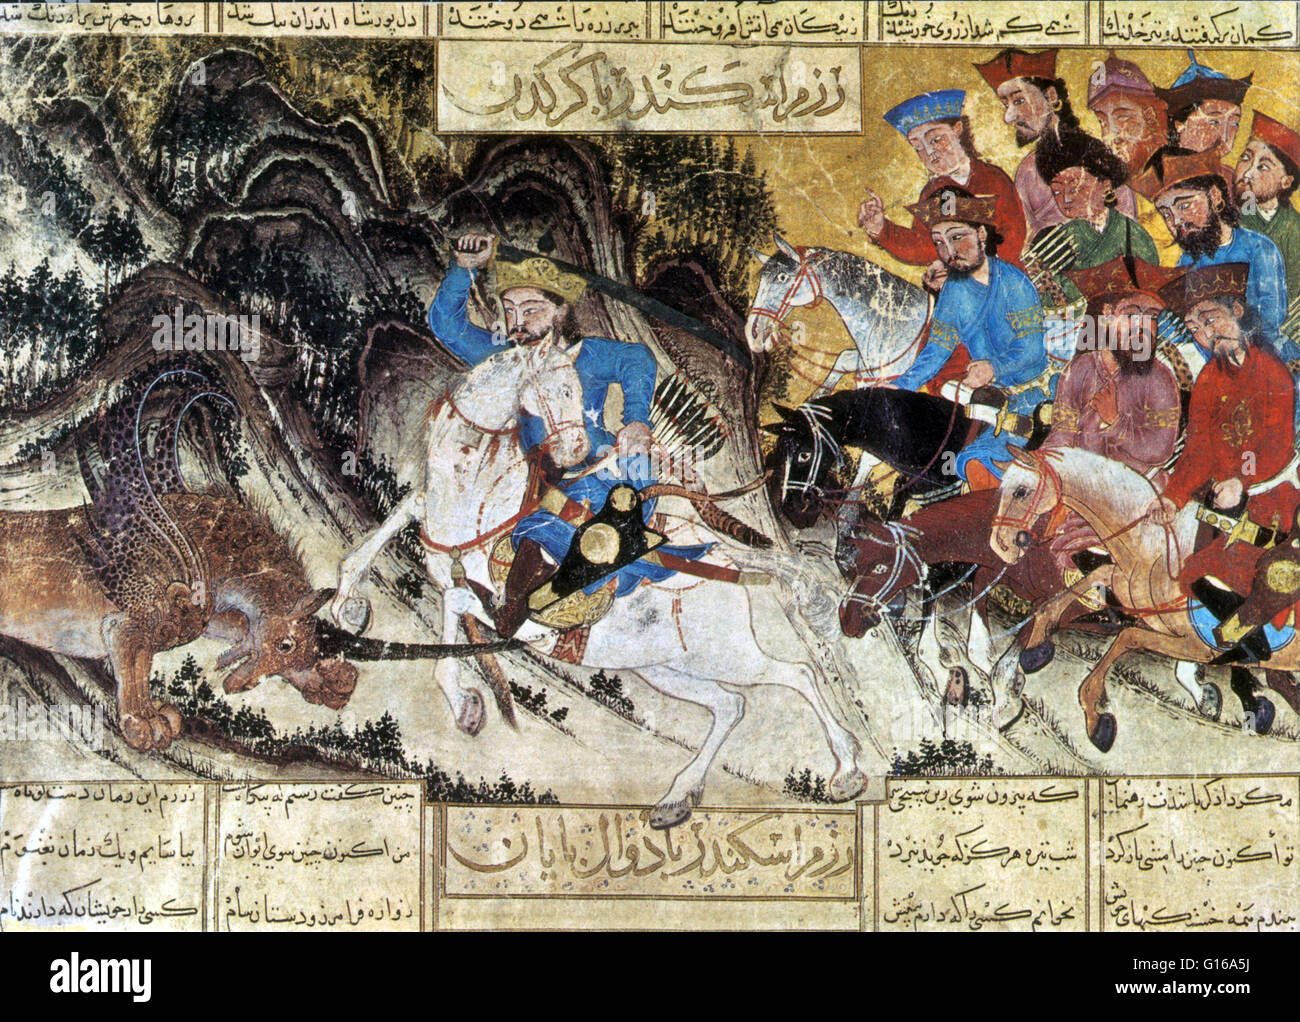 Alexander fights the monster of habash, taken from the Demotte Shahnama believed to have been created sometime before - Stock Image